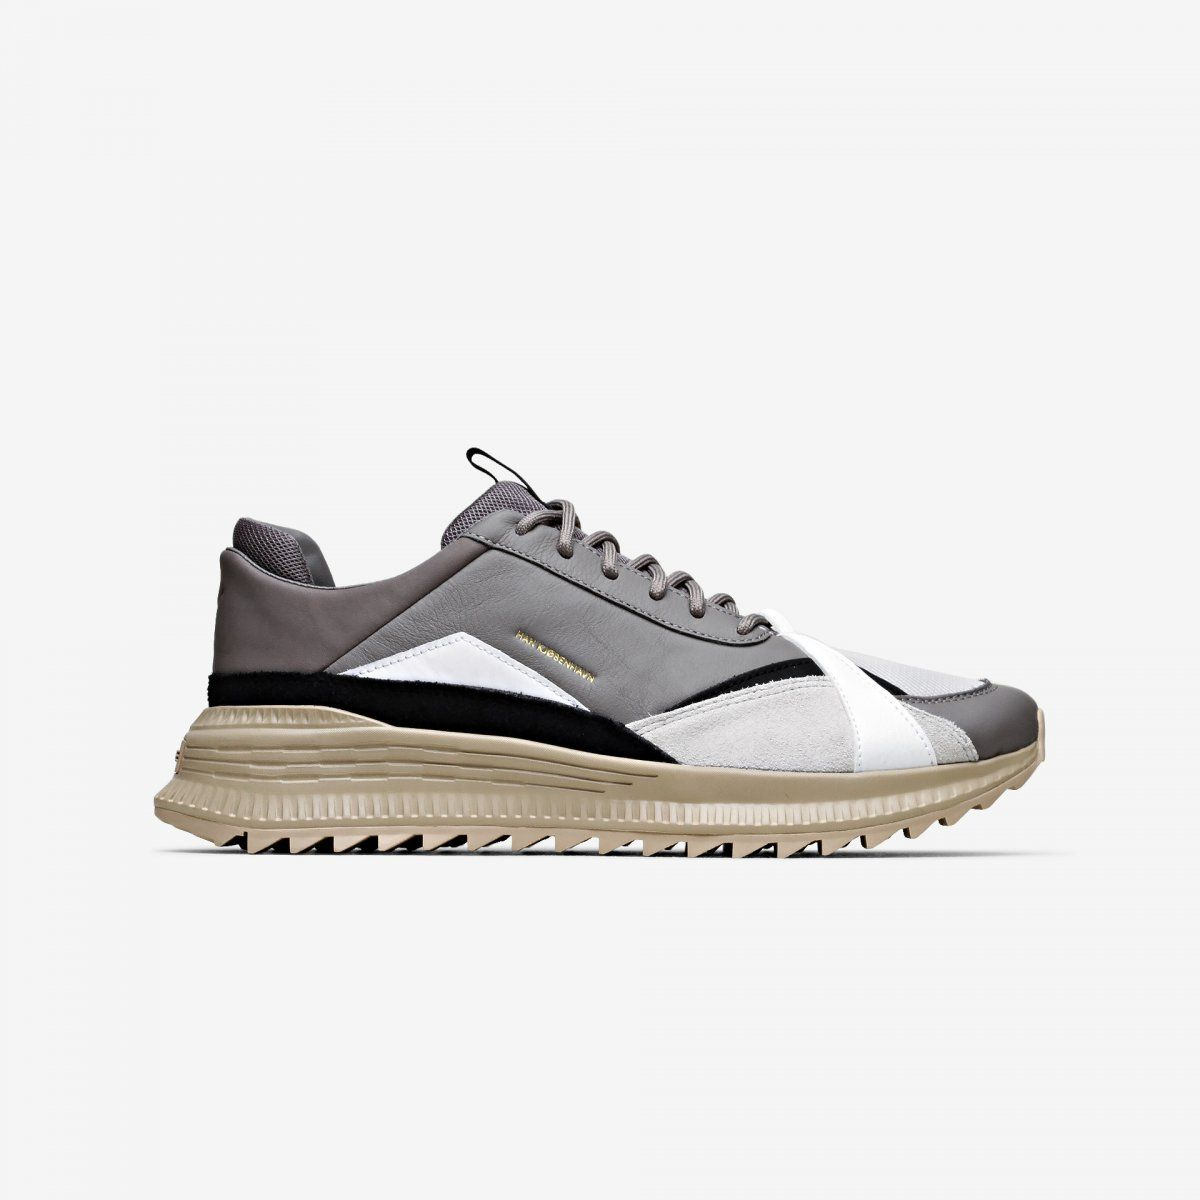 Grey leather man casual shoe 2019 SS Casual Sneakers 9c8a720a3